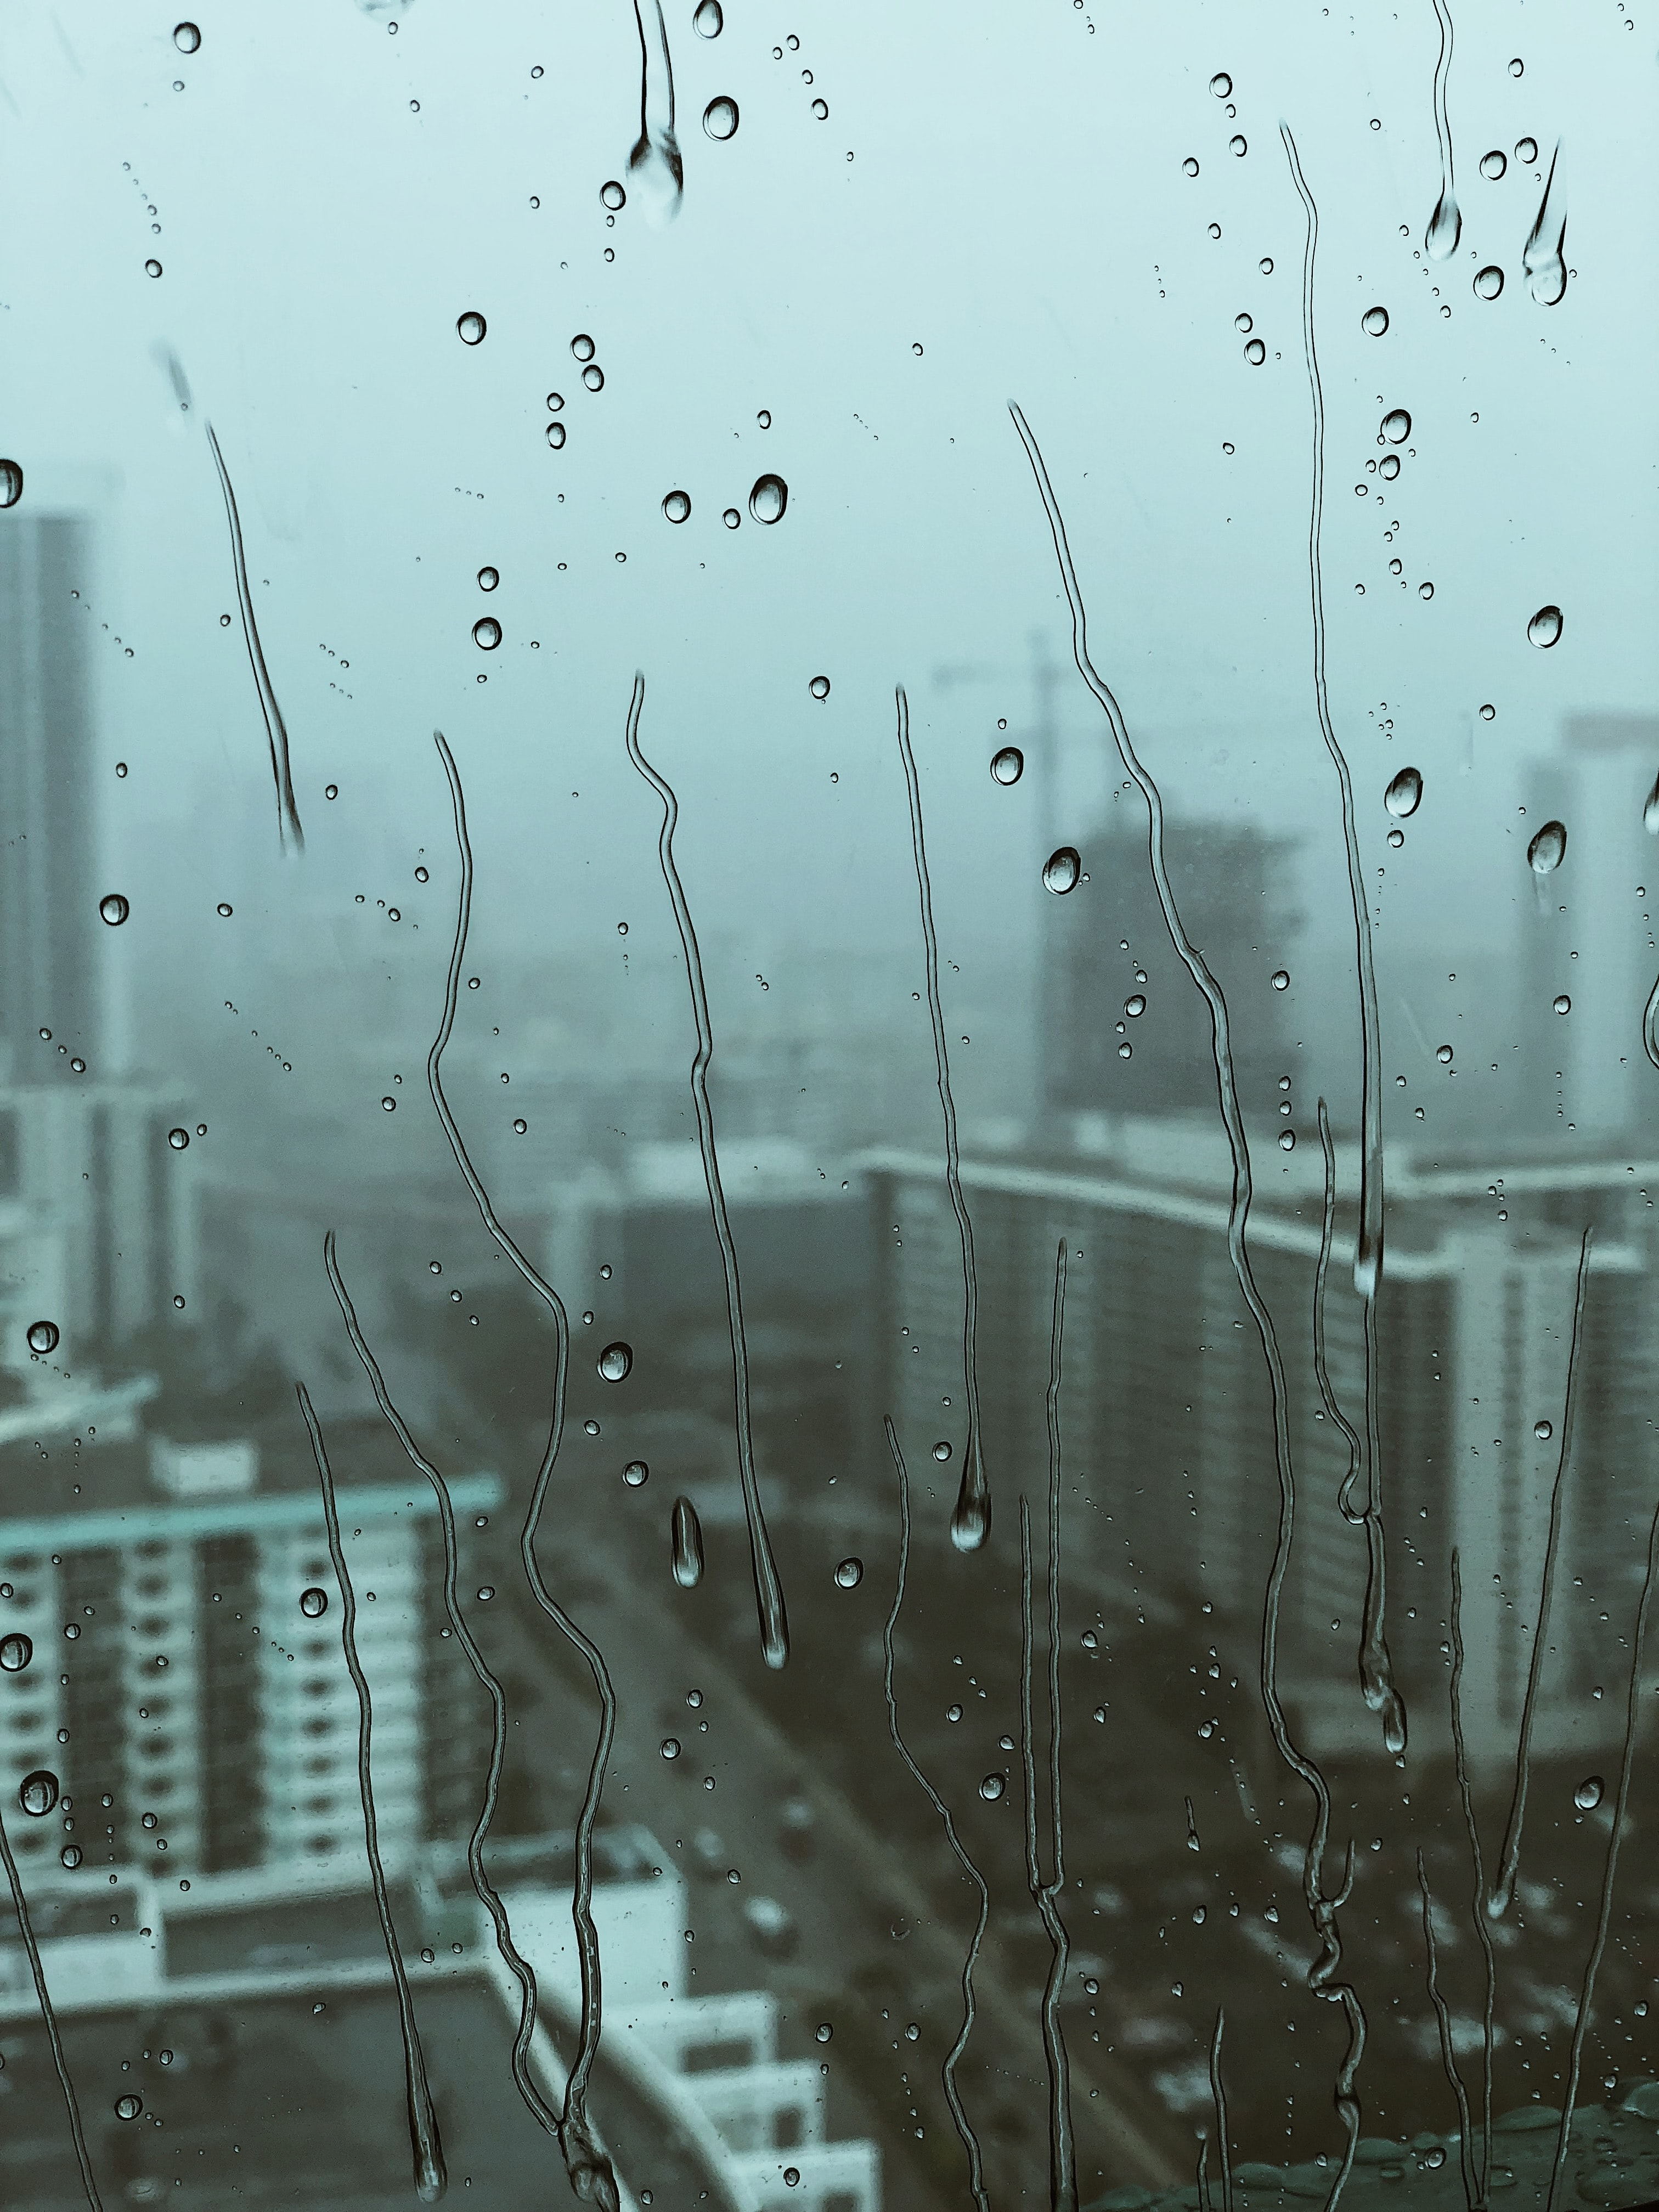 view of cityscape from glass with water droplets